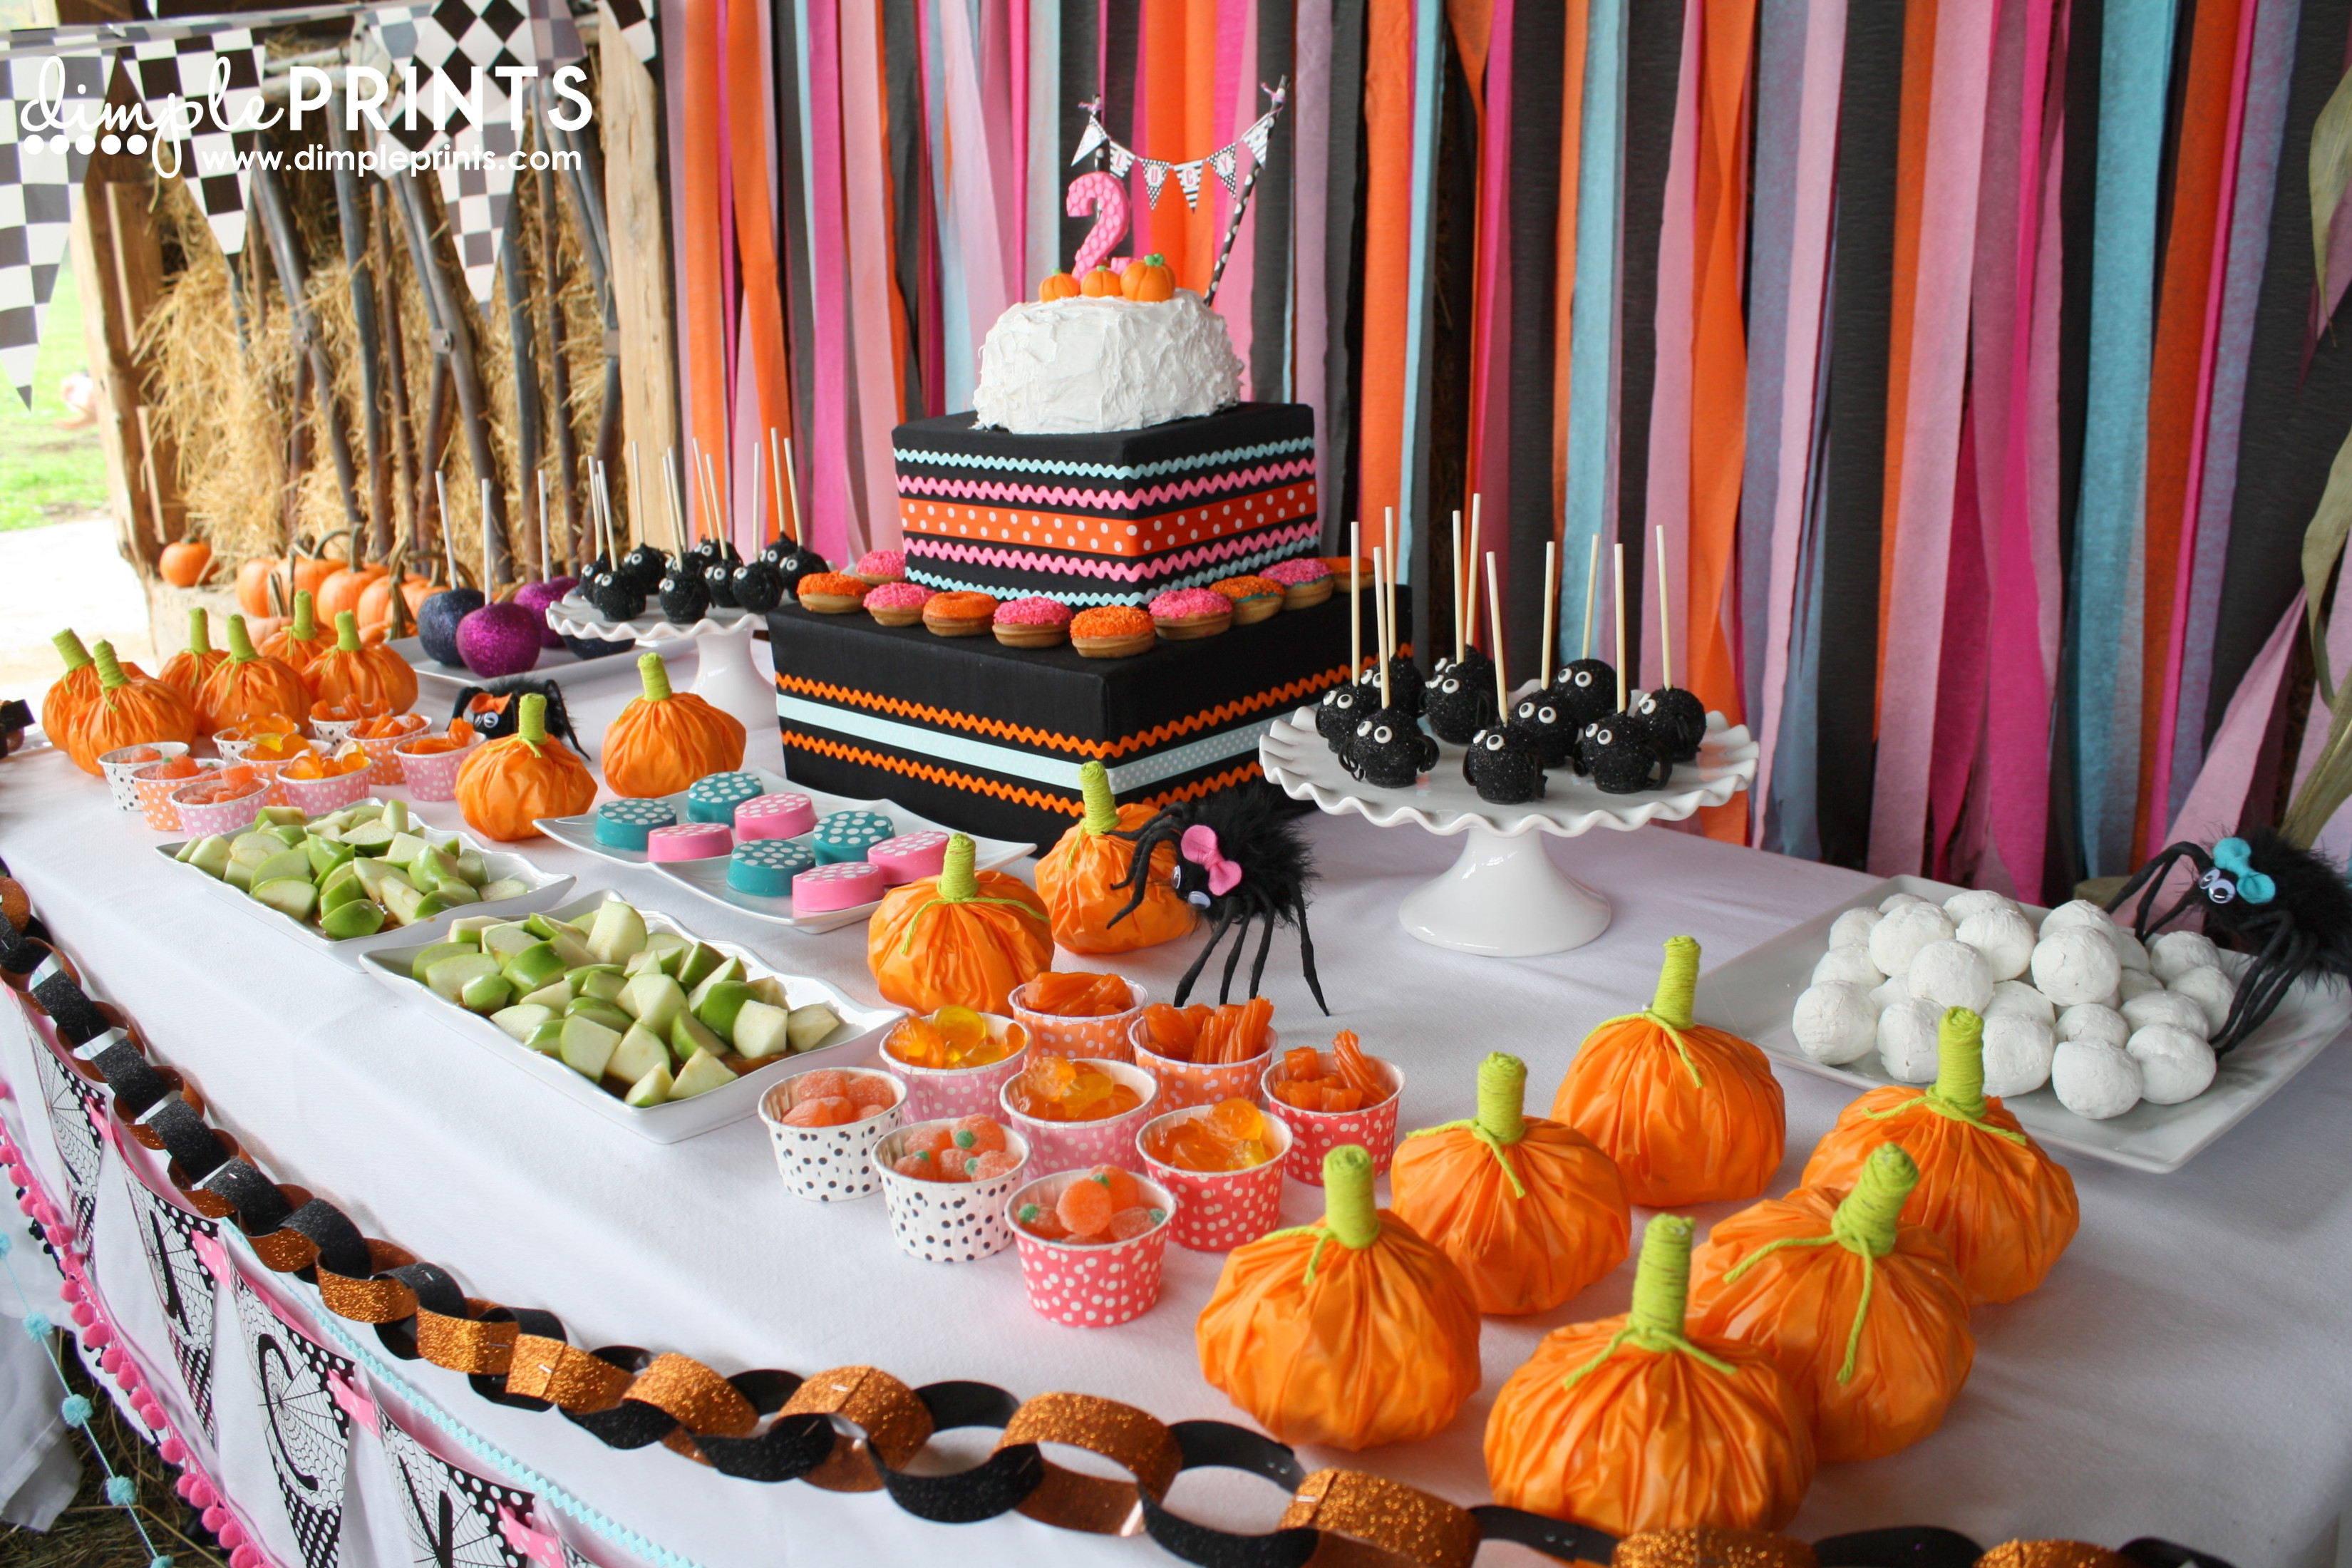 Best ideas about Pumpkin Patch Birthday Party . Save or Pin Itsy Bitsy Spider Birthday Party Dimple Prints Now.